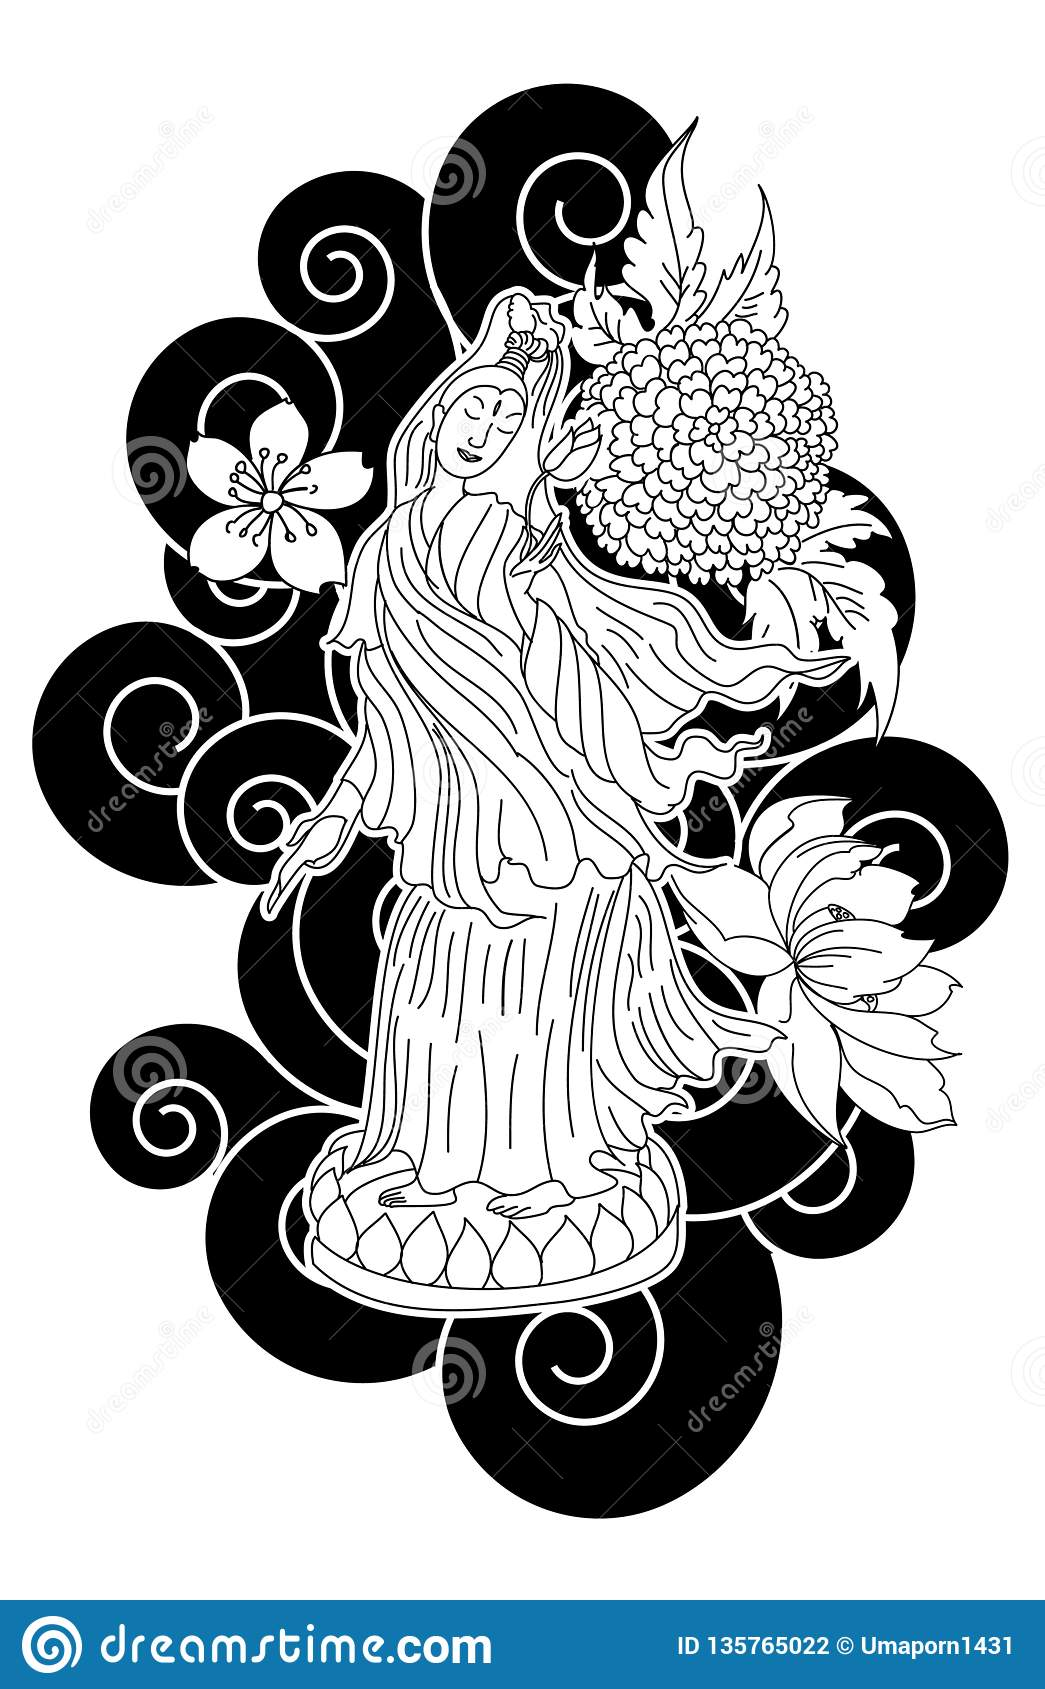 Guan Yin Women God Of Buddhism With Cherry Blossom Design For Traditional Tattoo Stock Vector Illustration Of Fruit Gold 135765022